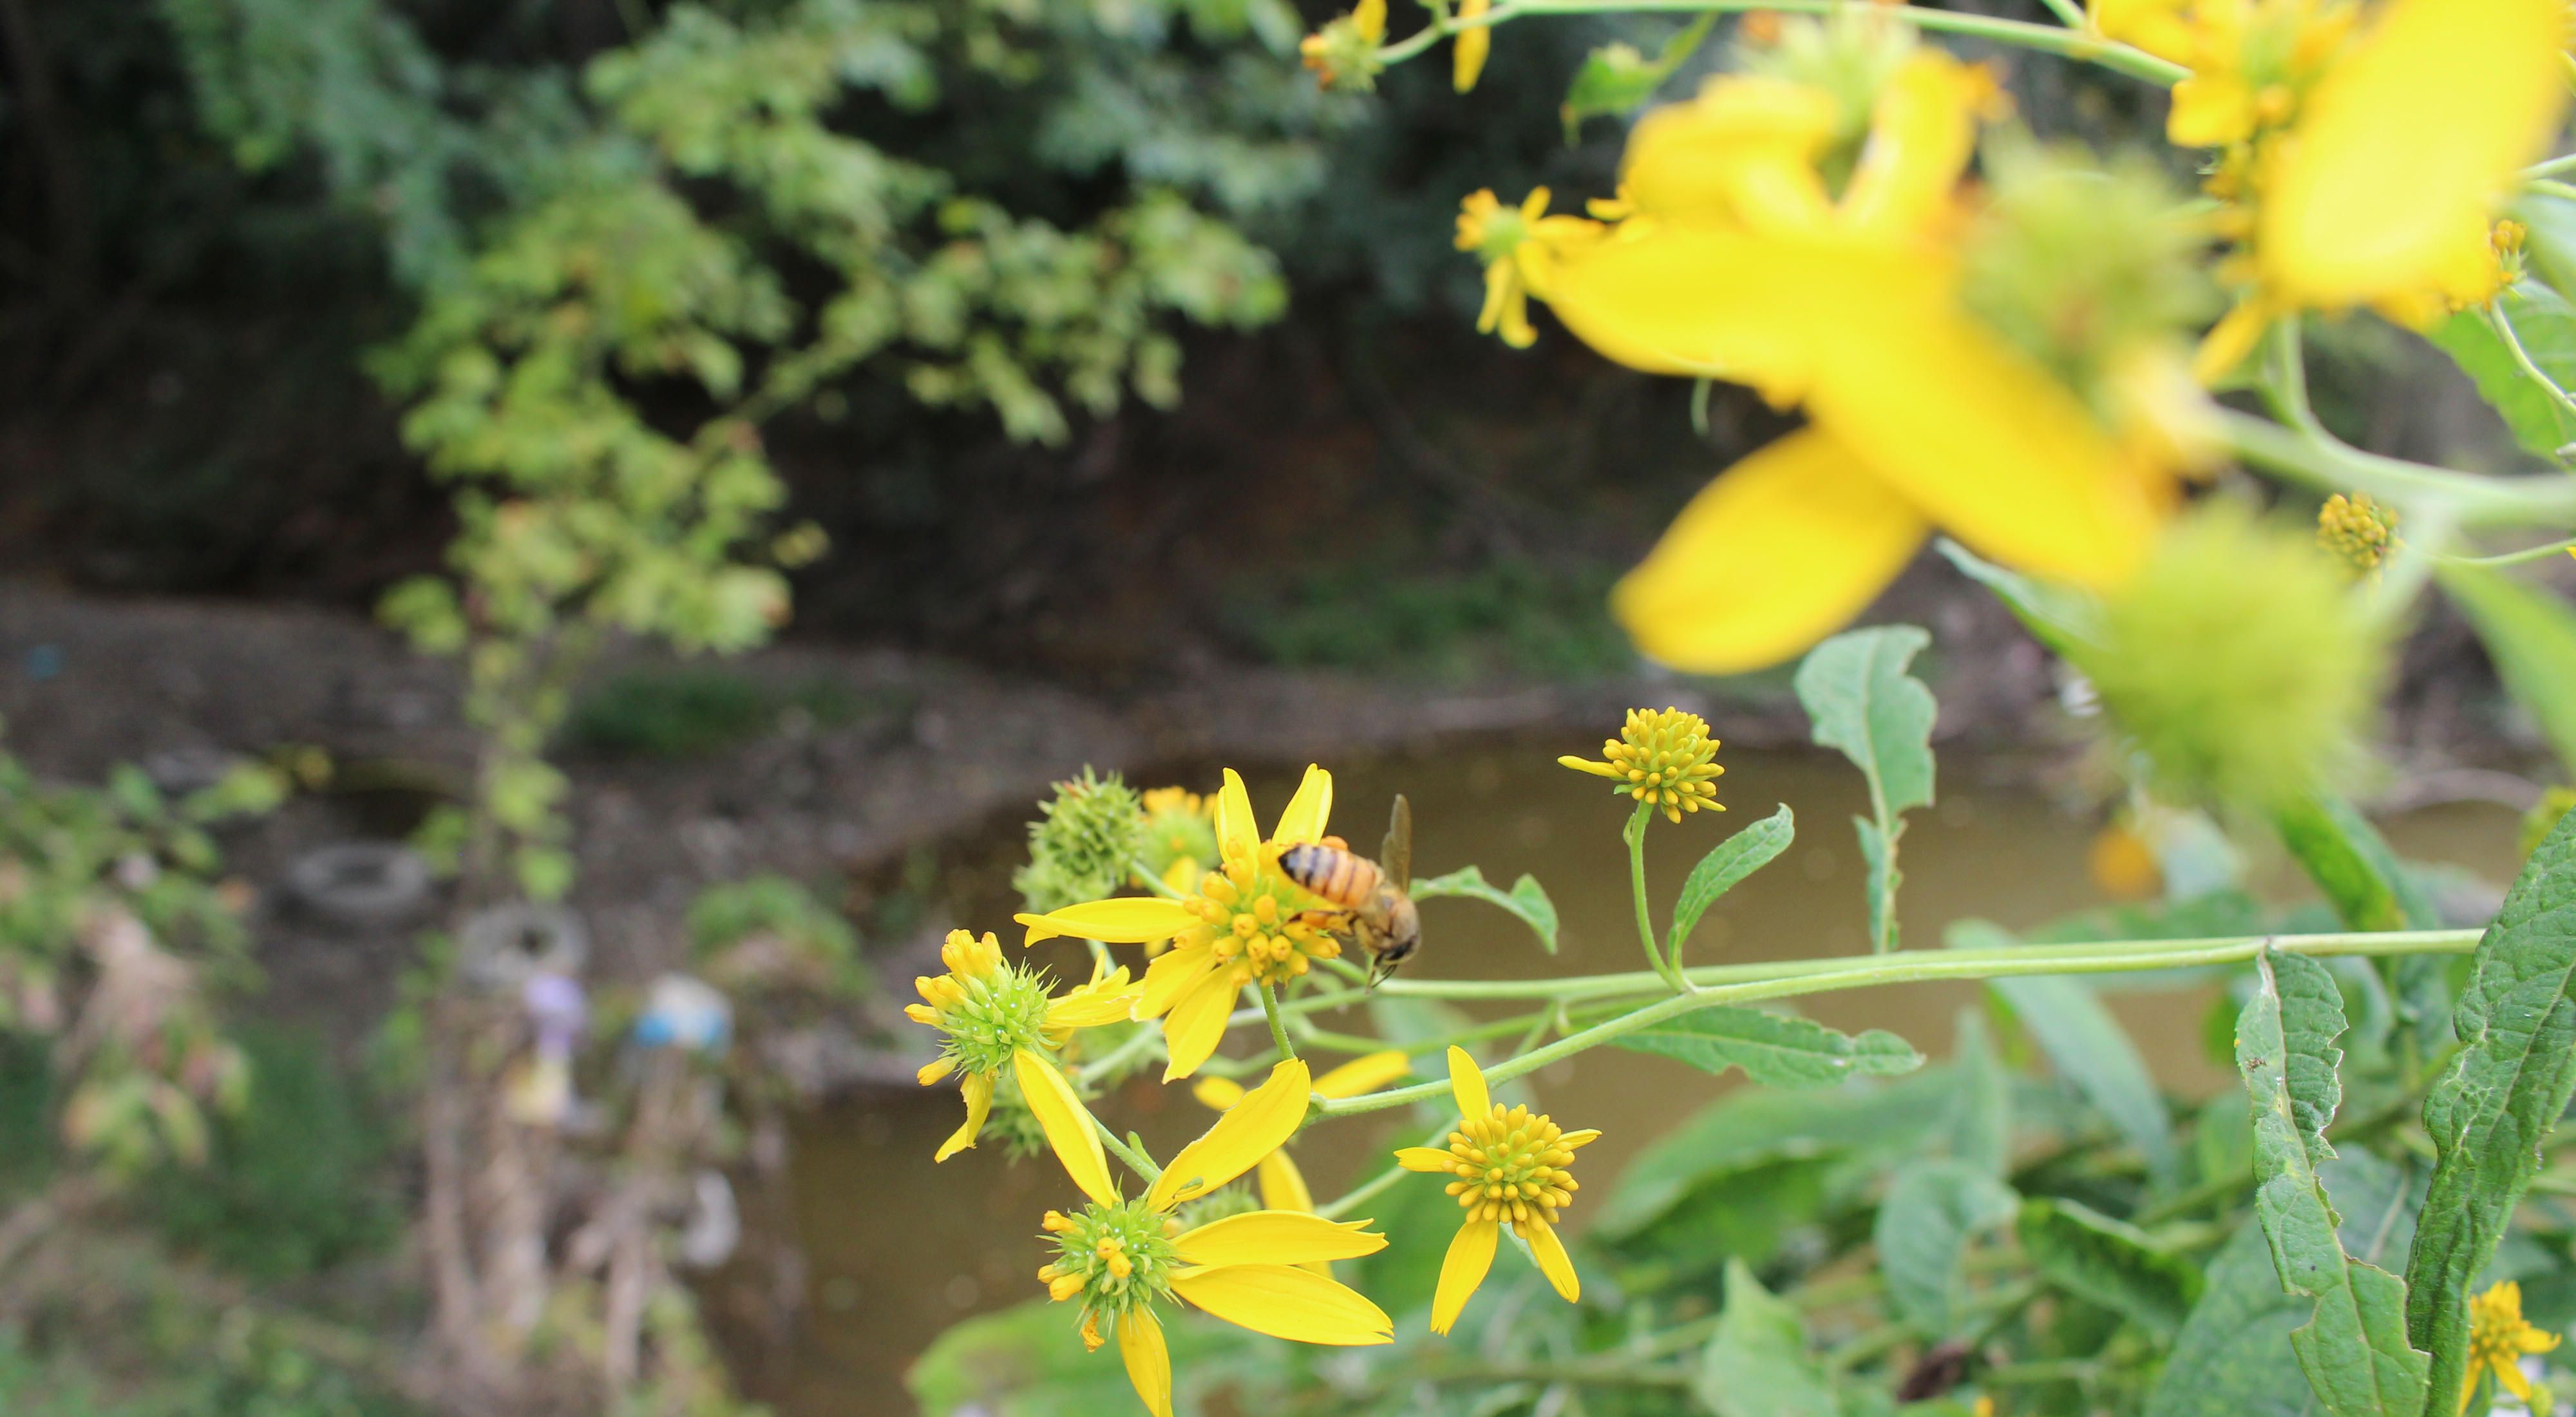 A bee rests on a yellow flower in bloom.